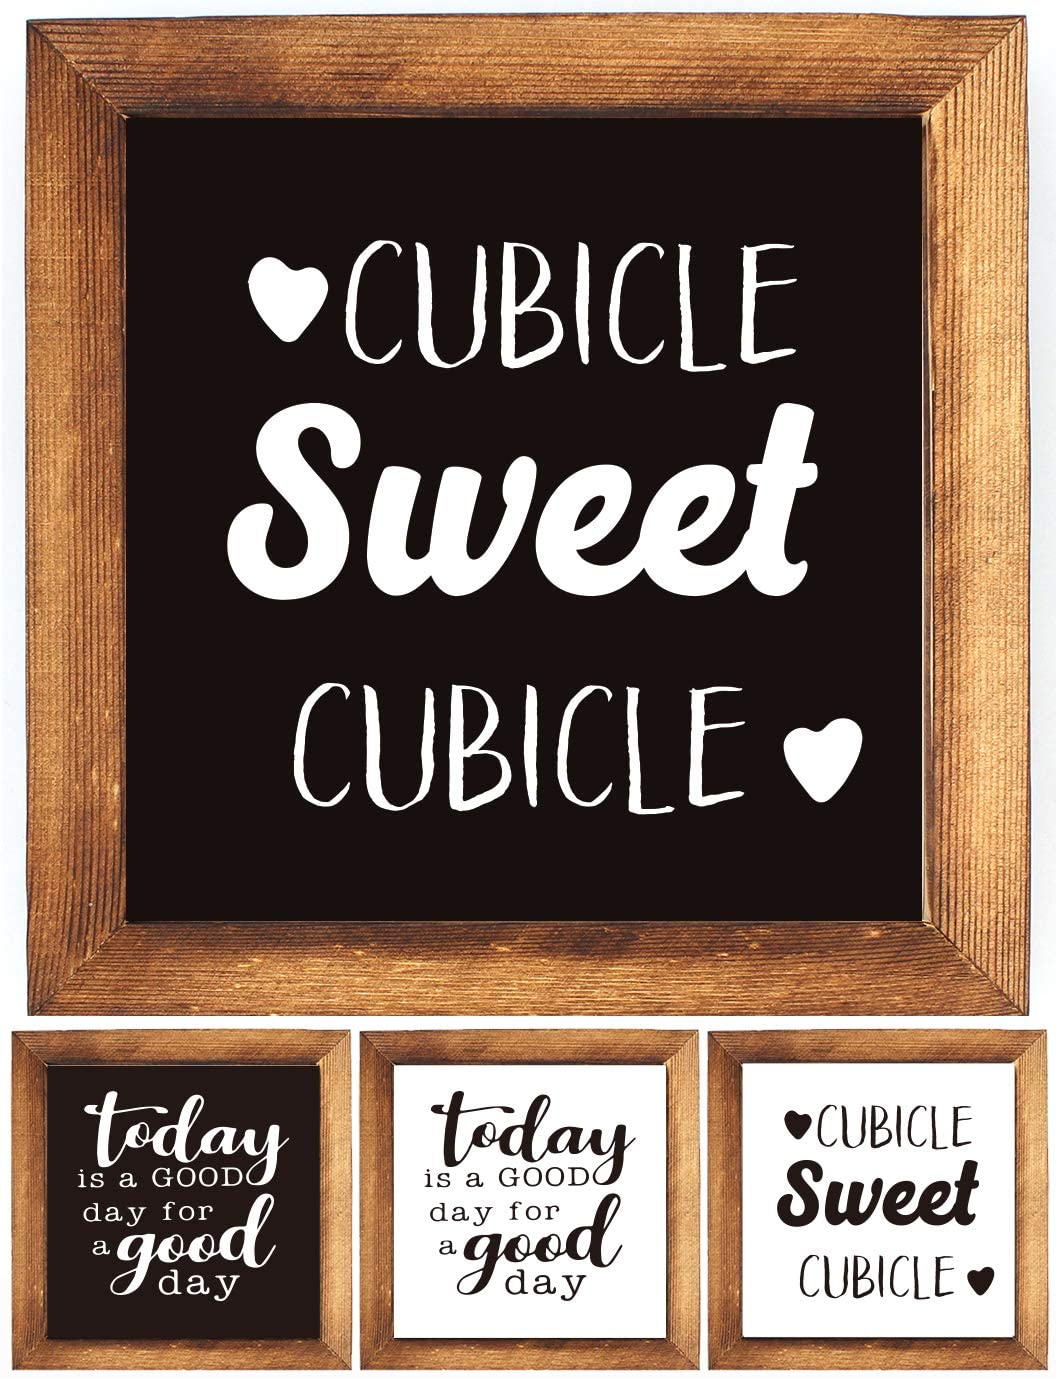 KU-DaYi Wood Framed Block Sign -Today is A Good Day for A Good Day, Cubicle Sweet Cubicle, Funny Inspirational Rustic Farmhouse Wooden Wood Framed Wall Hanging Sign Art Decor